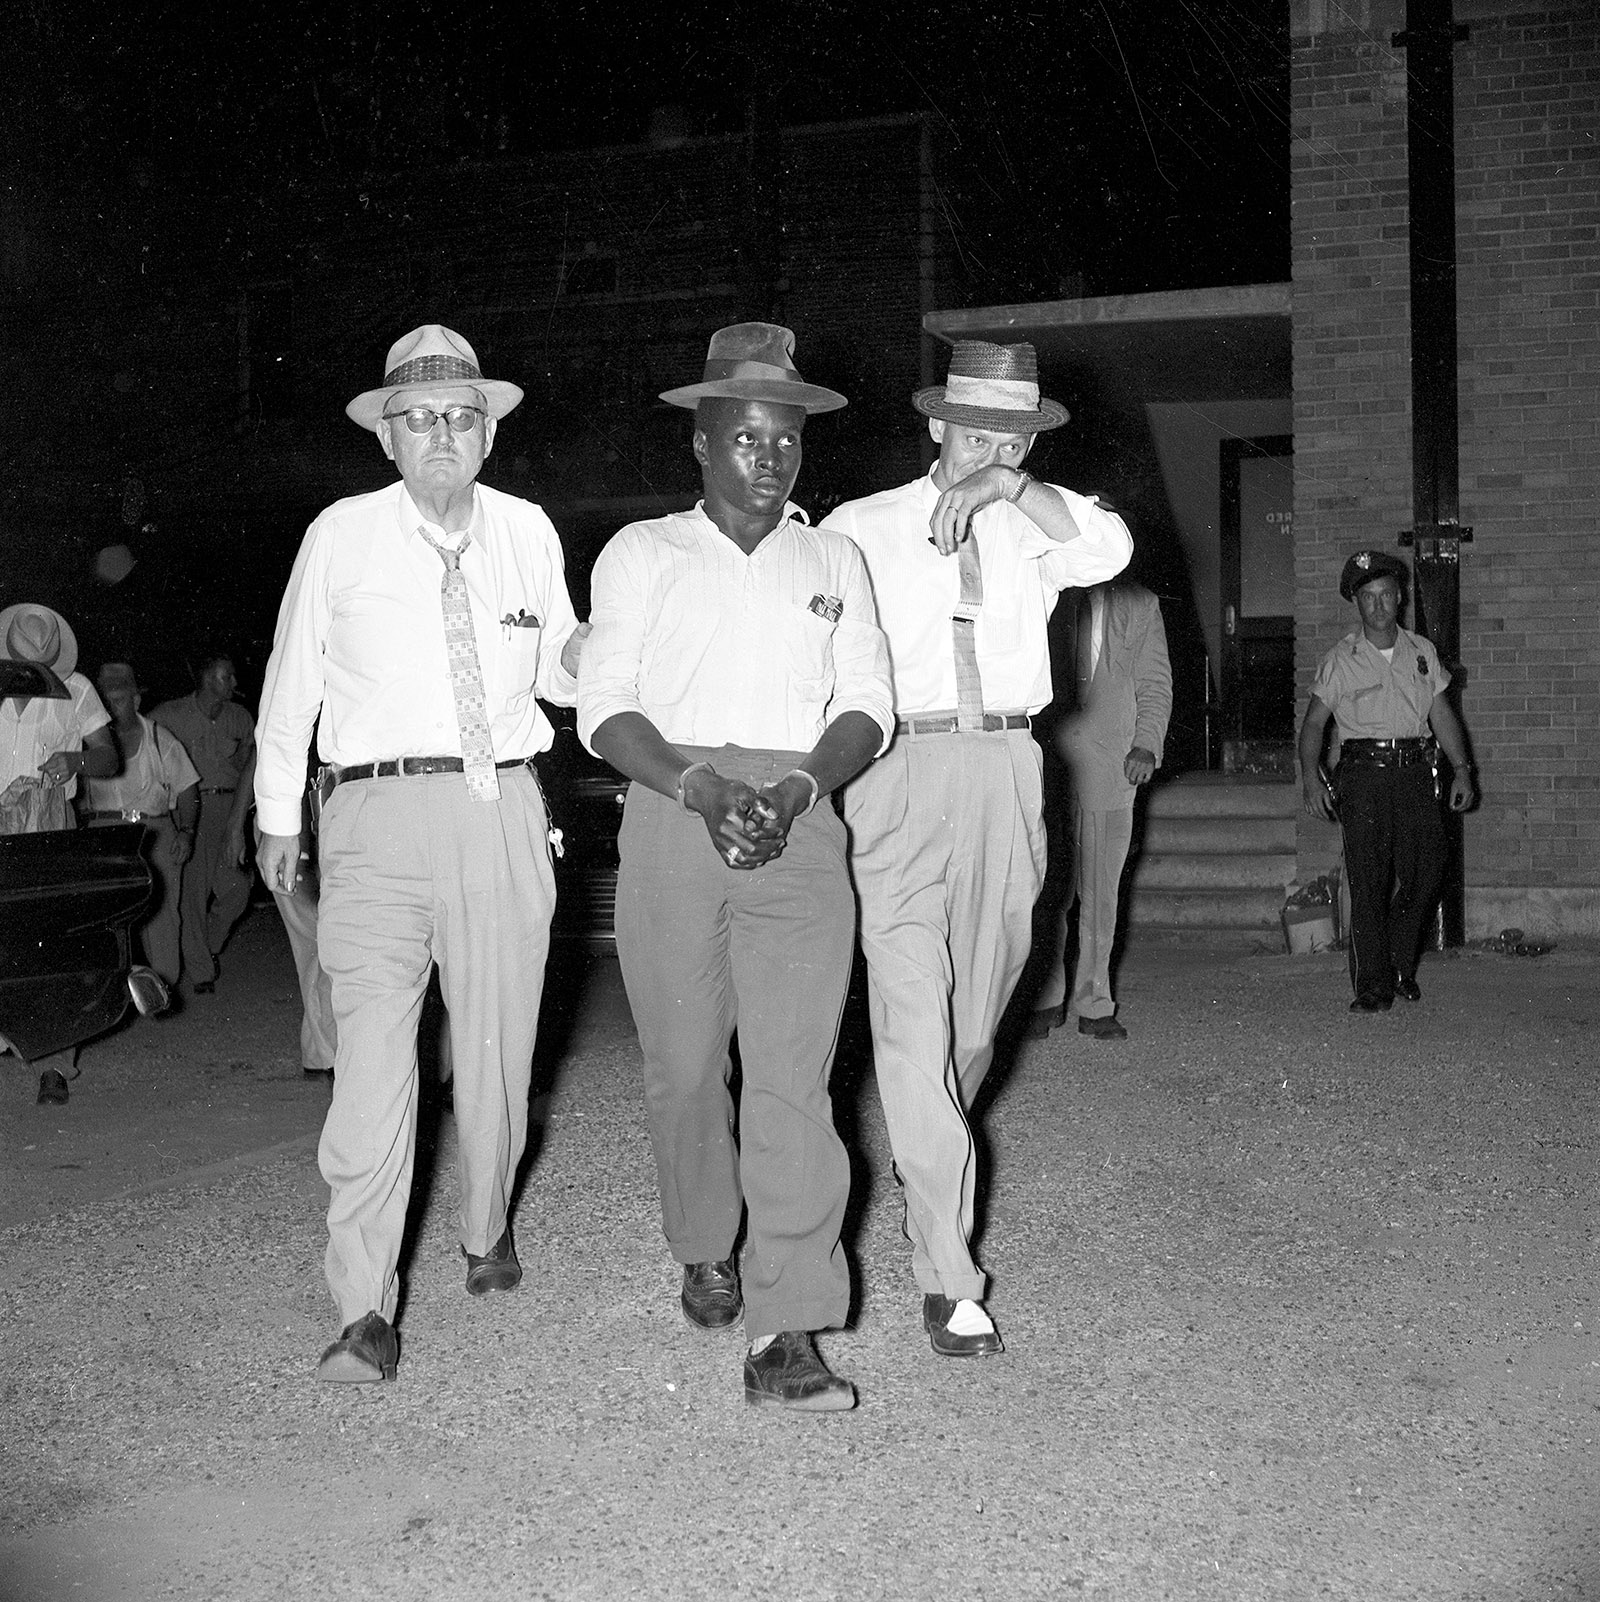 Caliph Washington arriving at the Jefferson County Jail in Bessemer, Alabama, escorted by Deputy Sheriff Clyde Morris and Police Chief George Barron, 1957